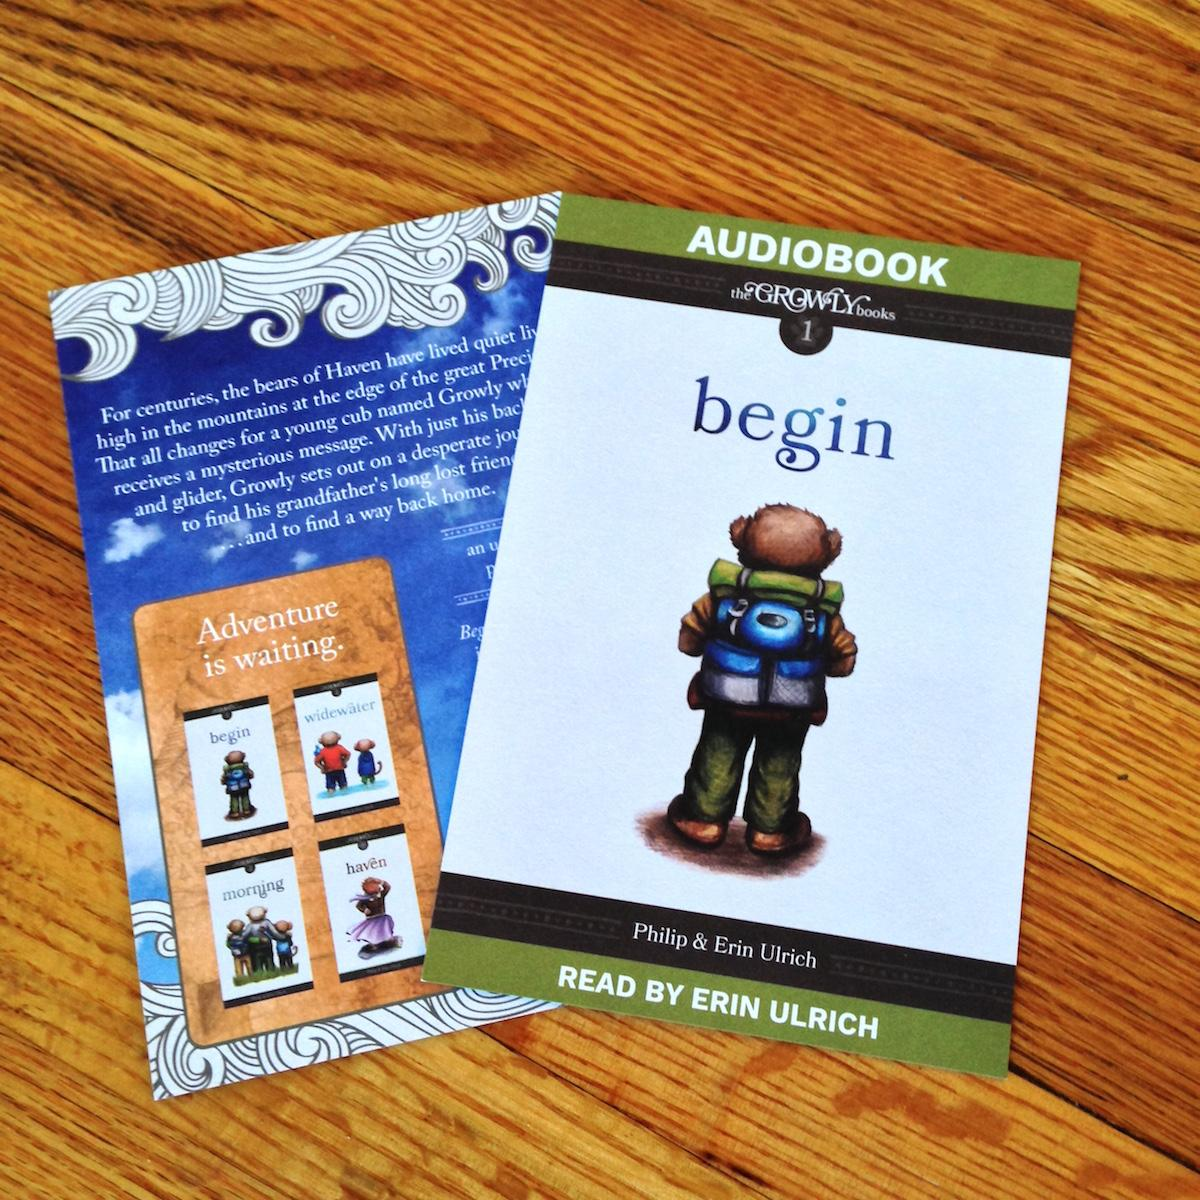 Begin Audiobook Insert